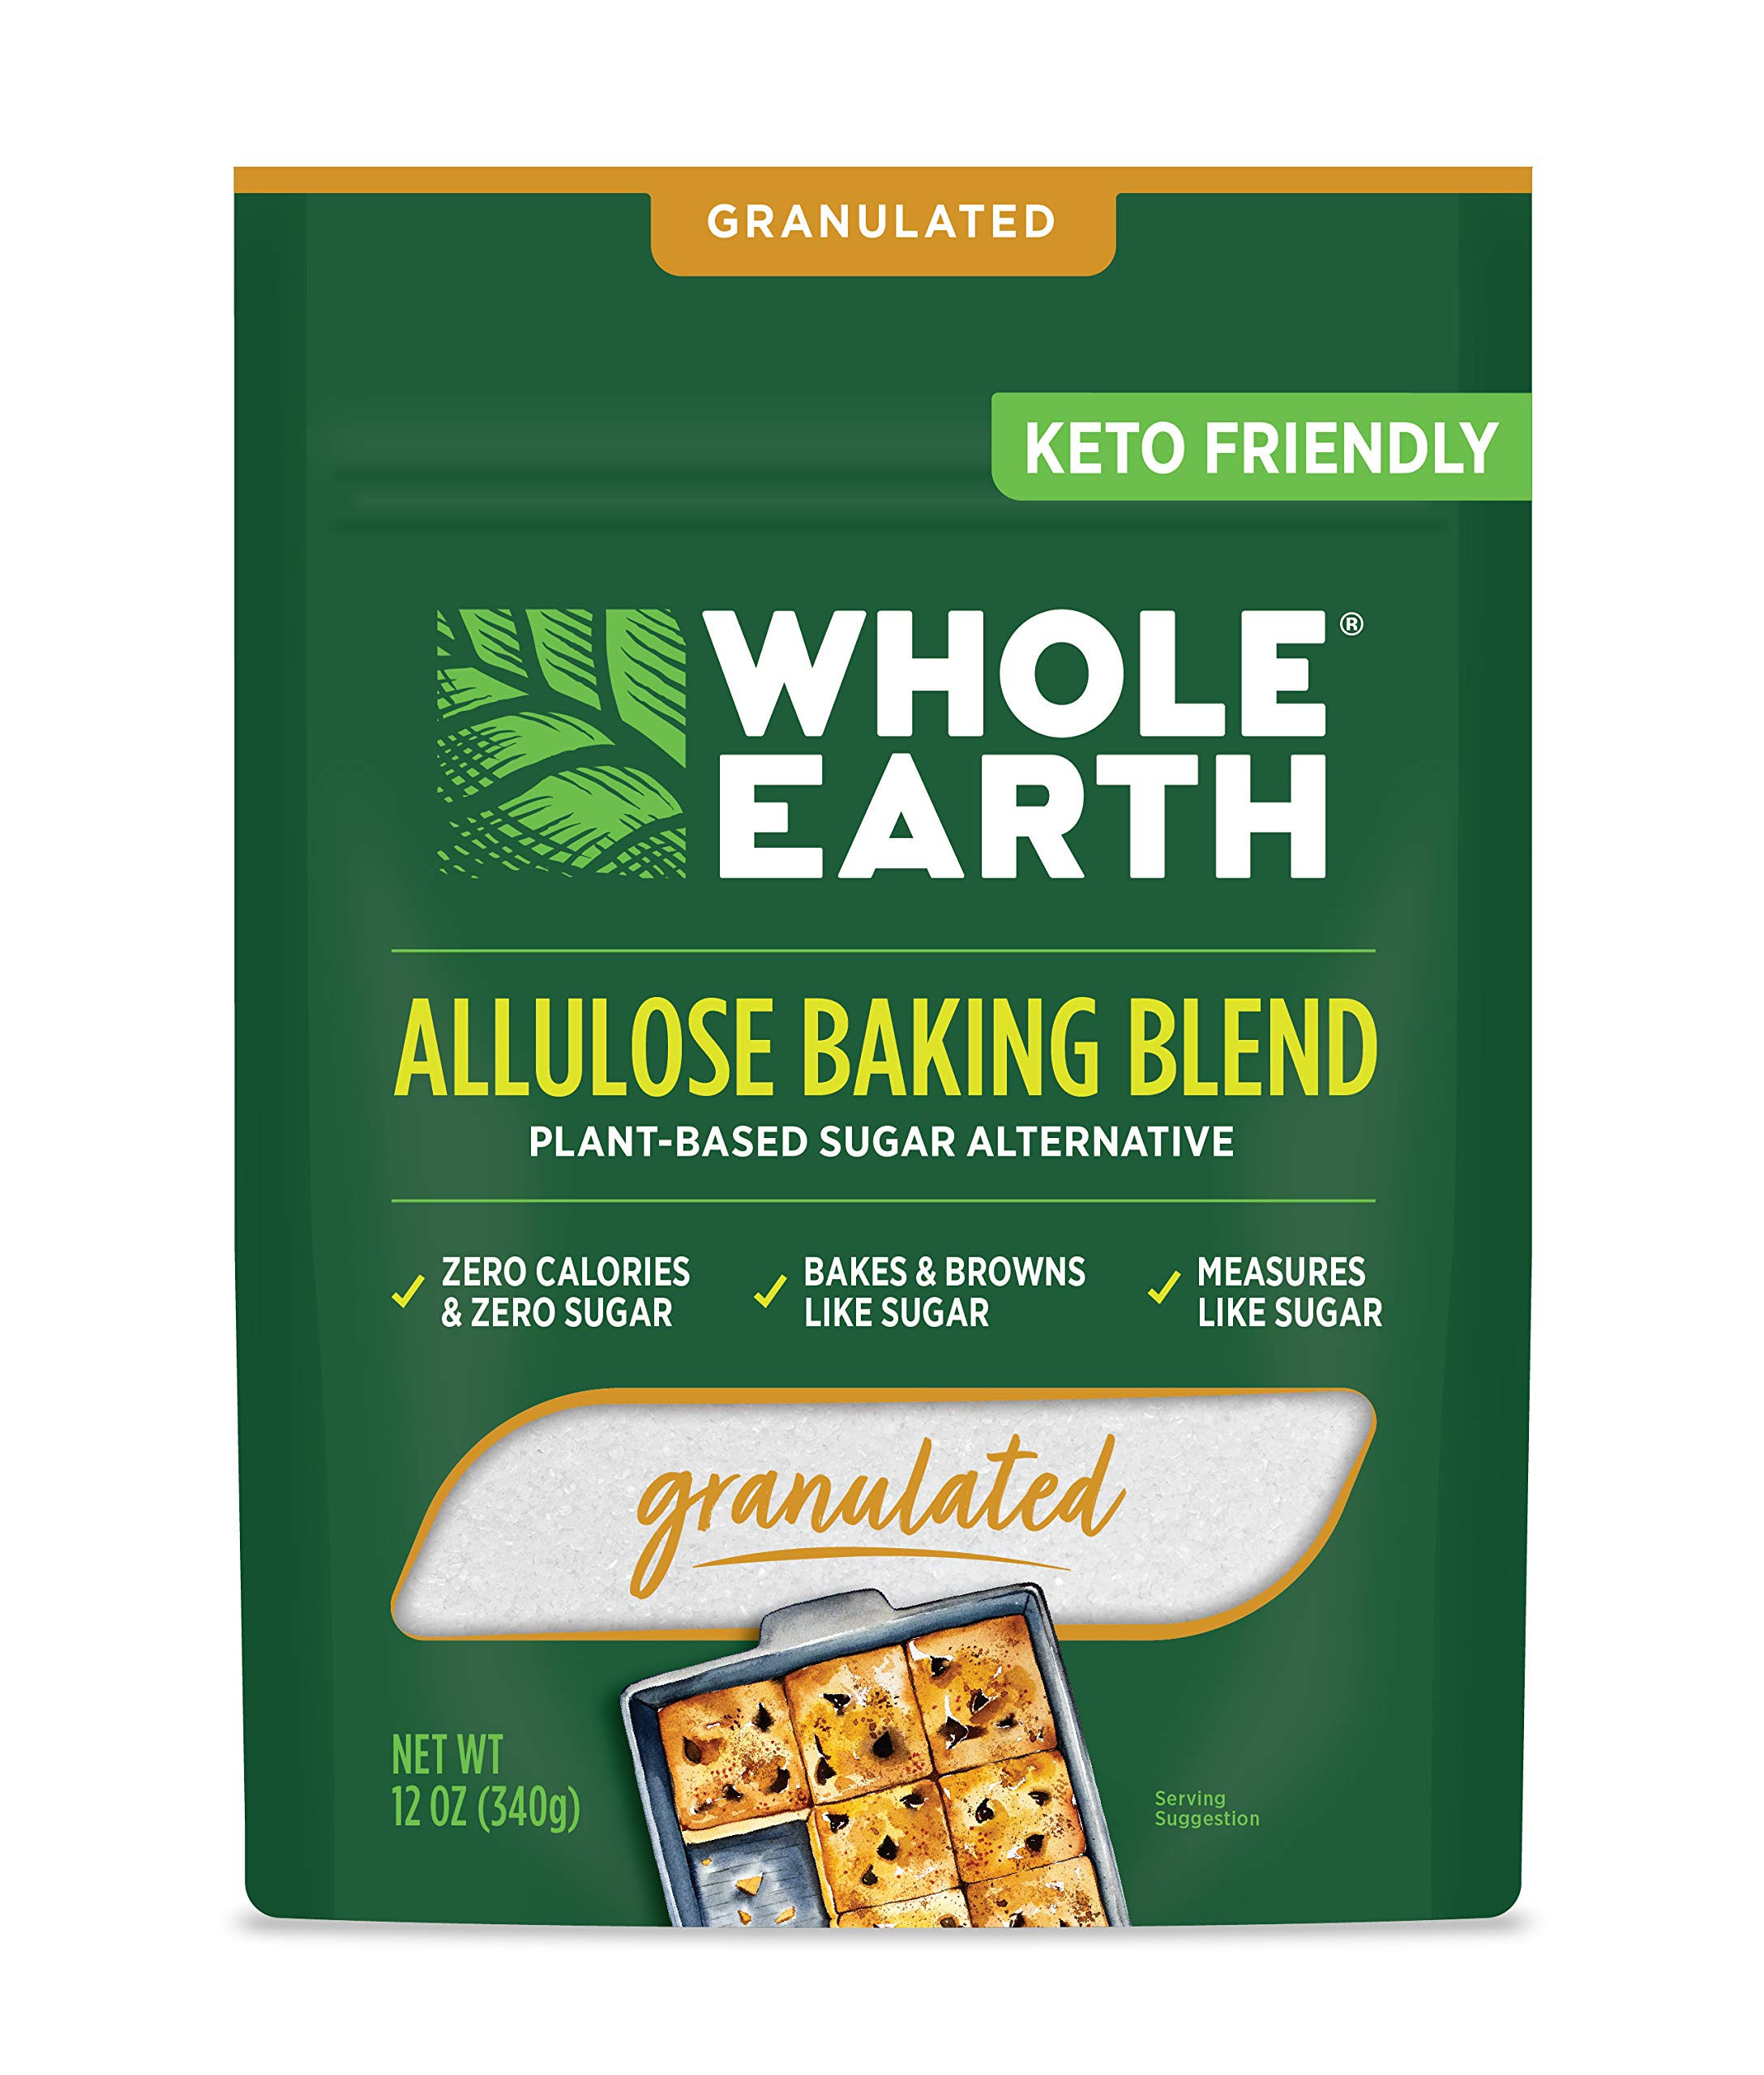 Whole Earth Sweetener Co. Allulose Baking Blend, Granulated, Plant-Based Sugar Alternative, 12 Ounces, 0.75 Pound (Pack of 1)